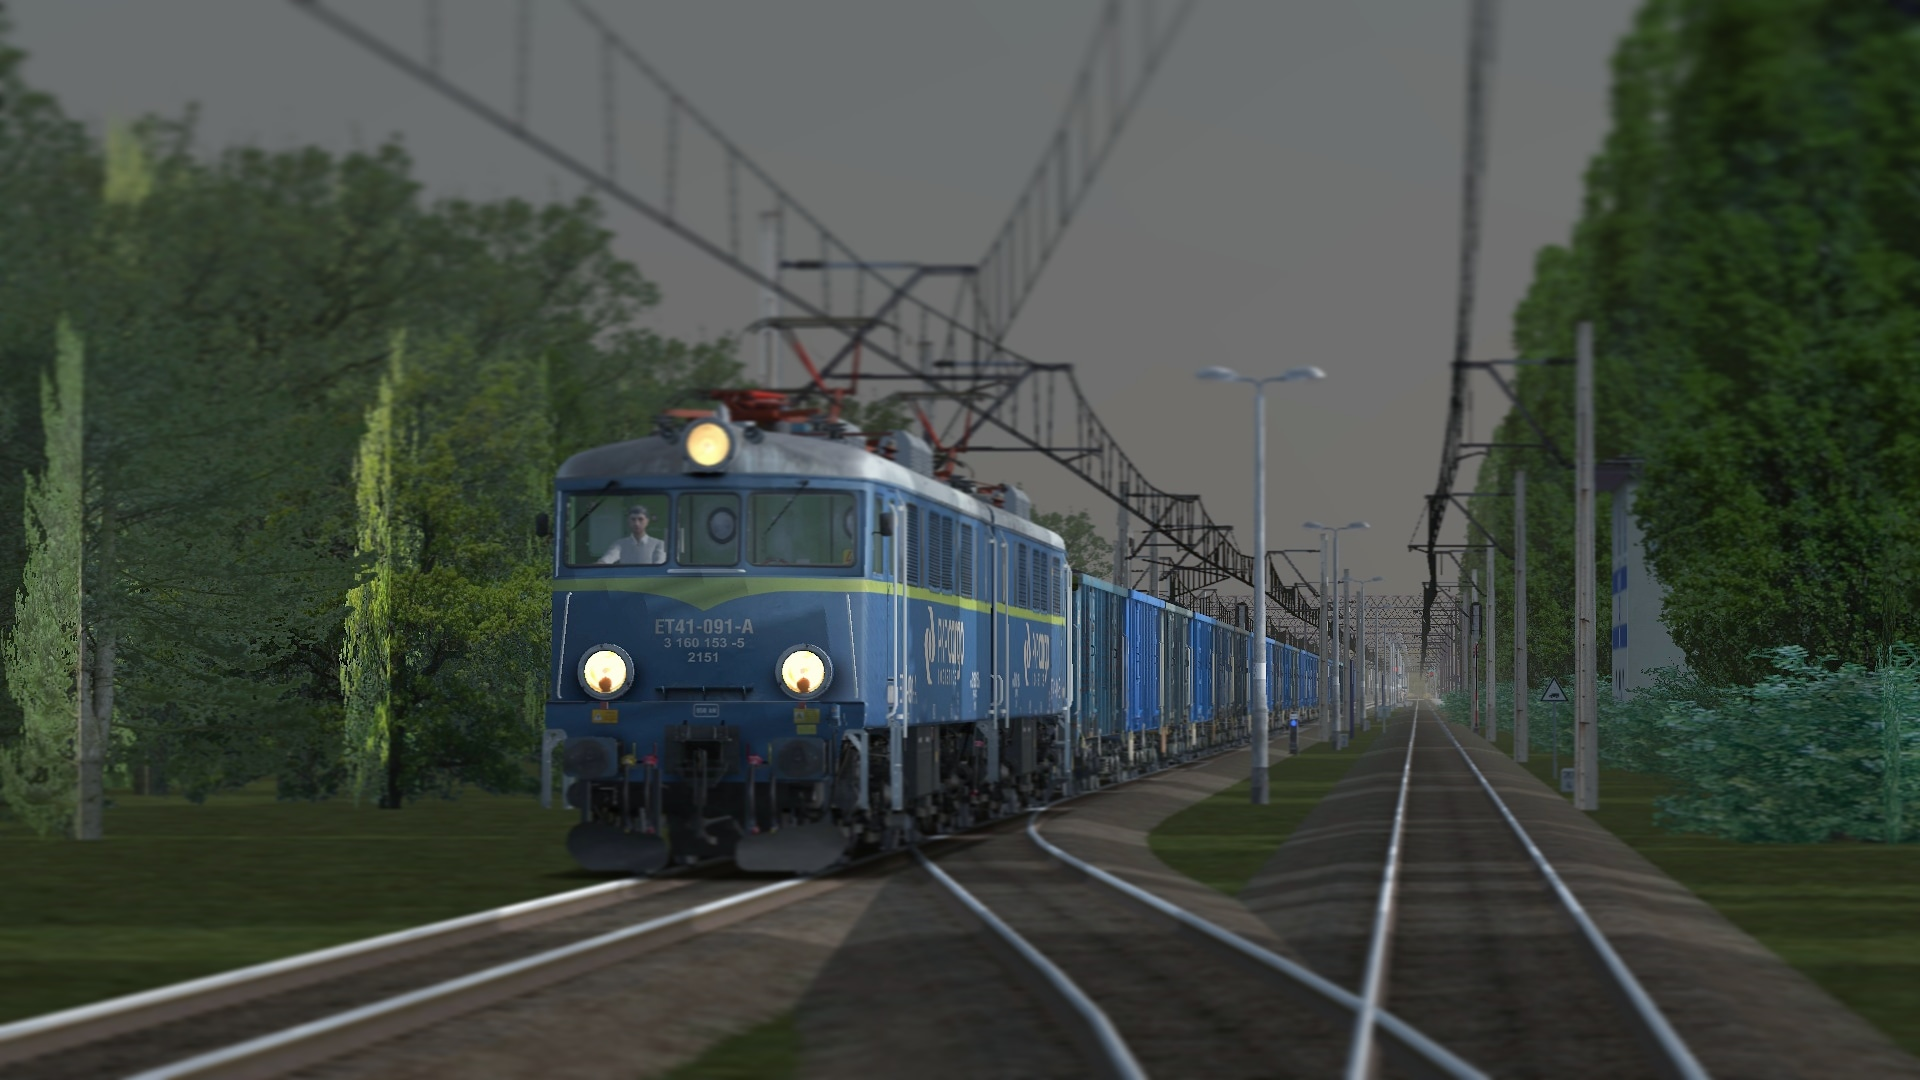 ET 41   091 with coal going to Dbica trainsim 1920x1080